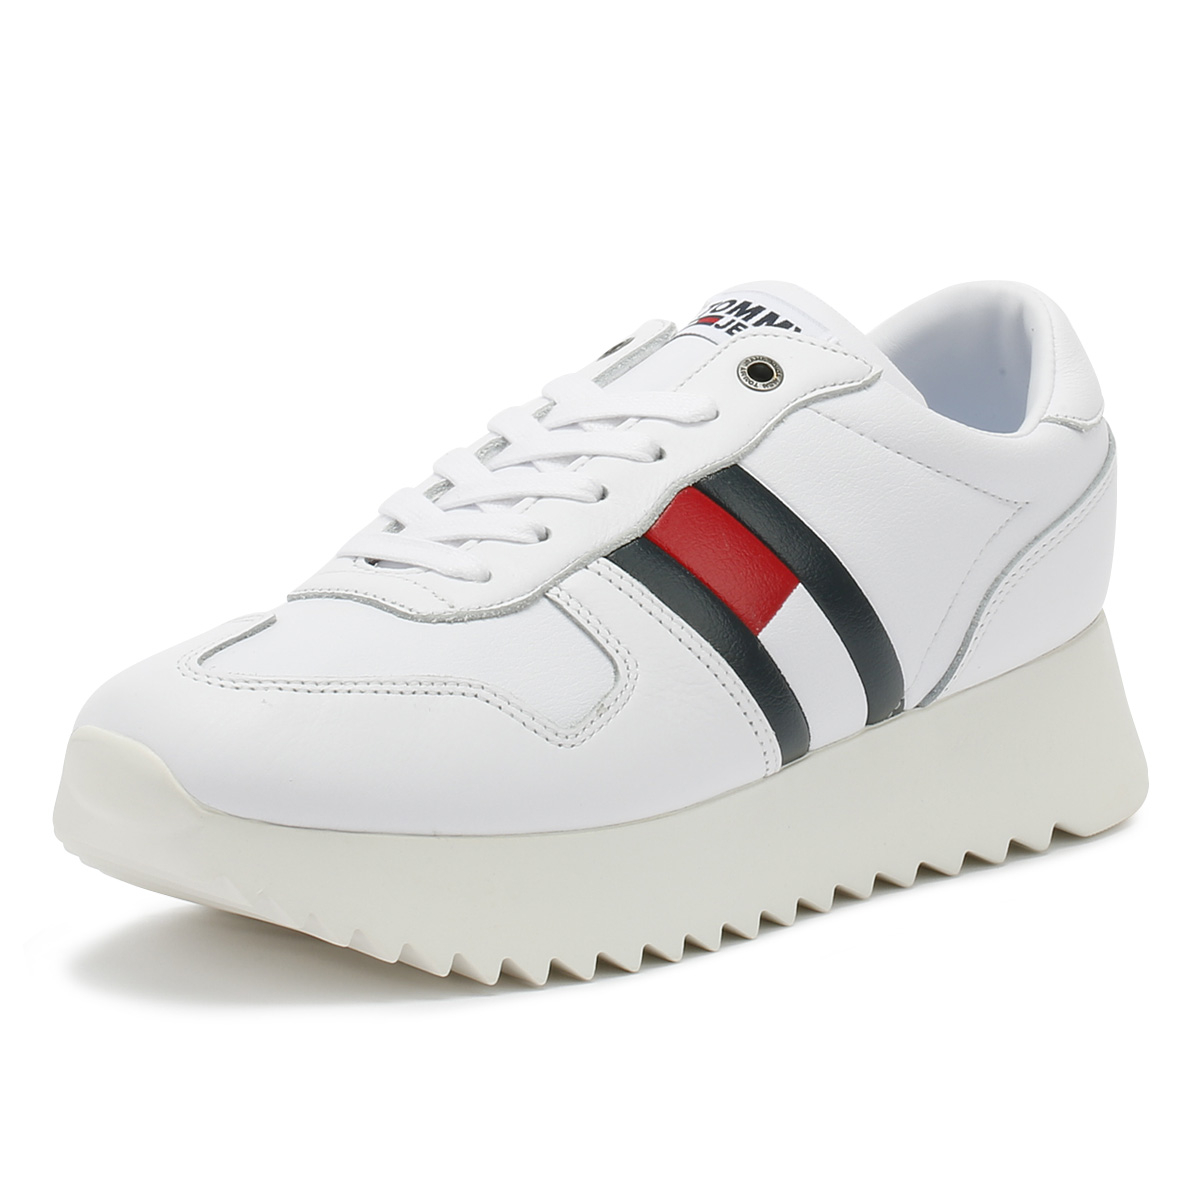 6fa183543 Details about Tommy Hilfiger Womens Trainers White High Cleated Lace Up  Sport Casual Shoes